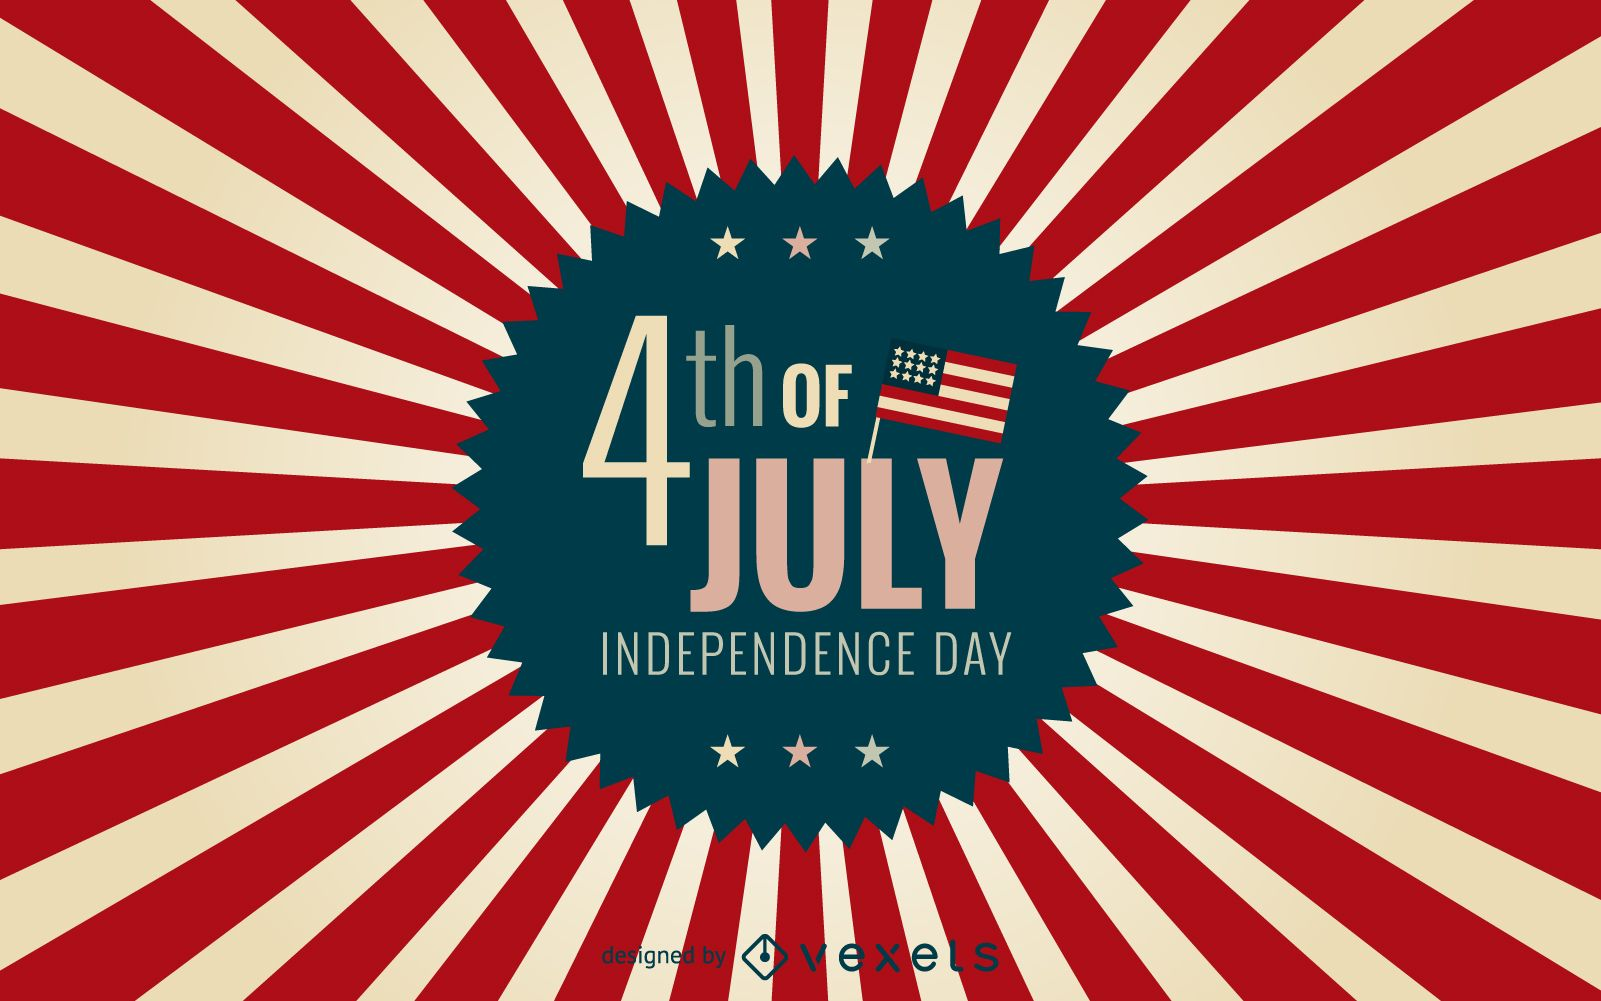 4th Of July Badge With Starburst Background Vector Download